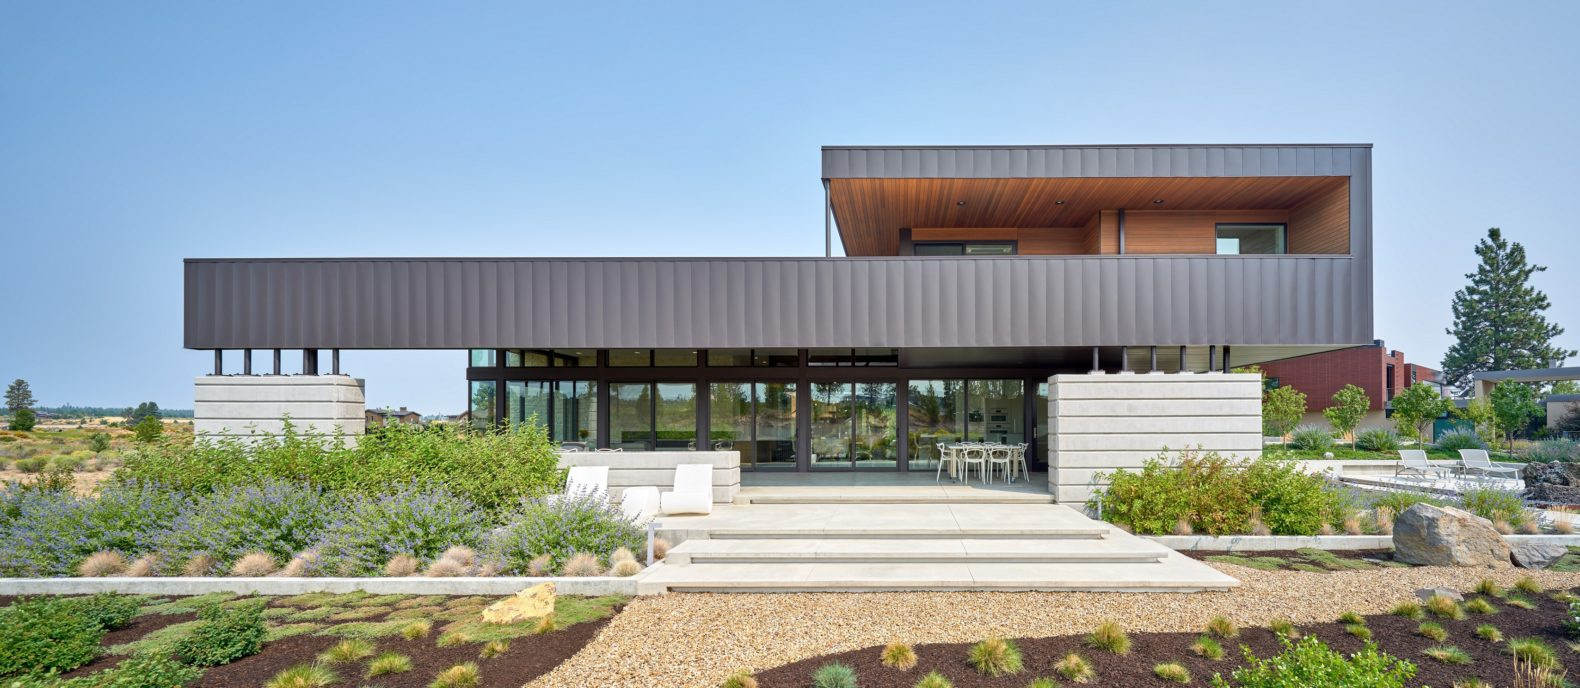 modern architecture concrete steel wood